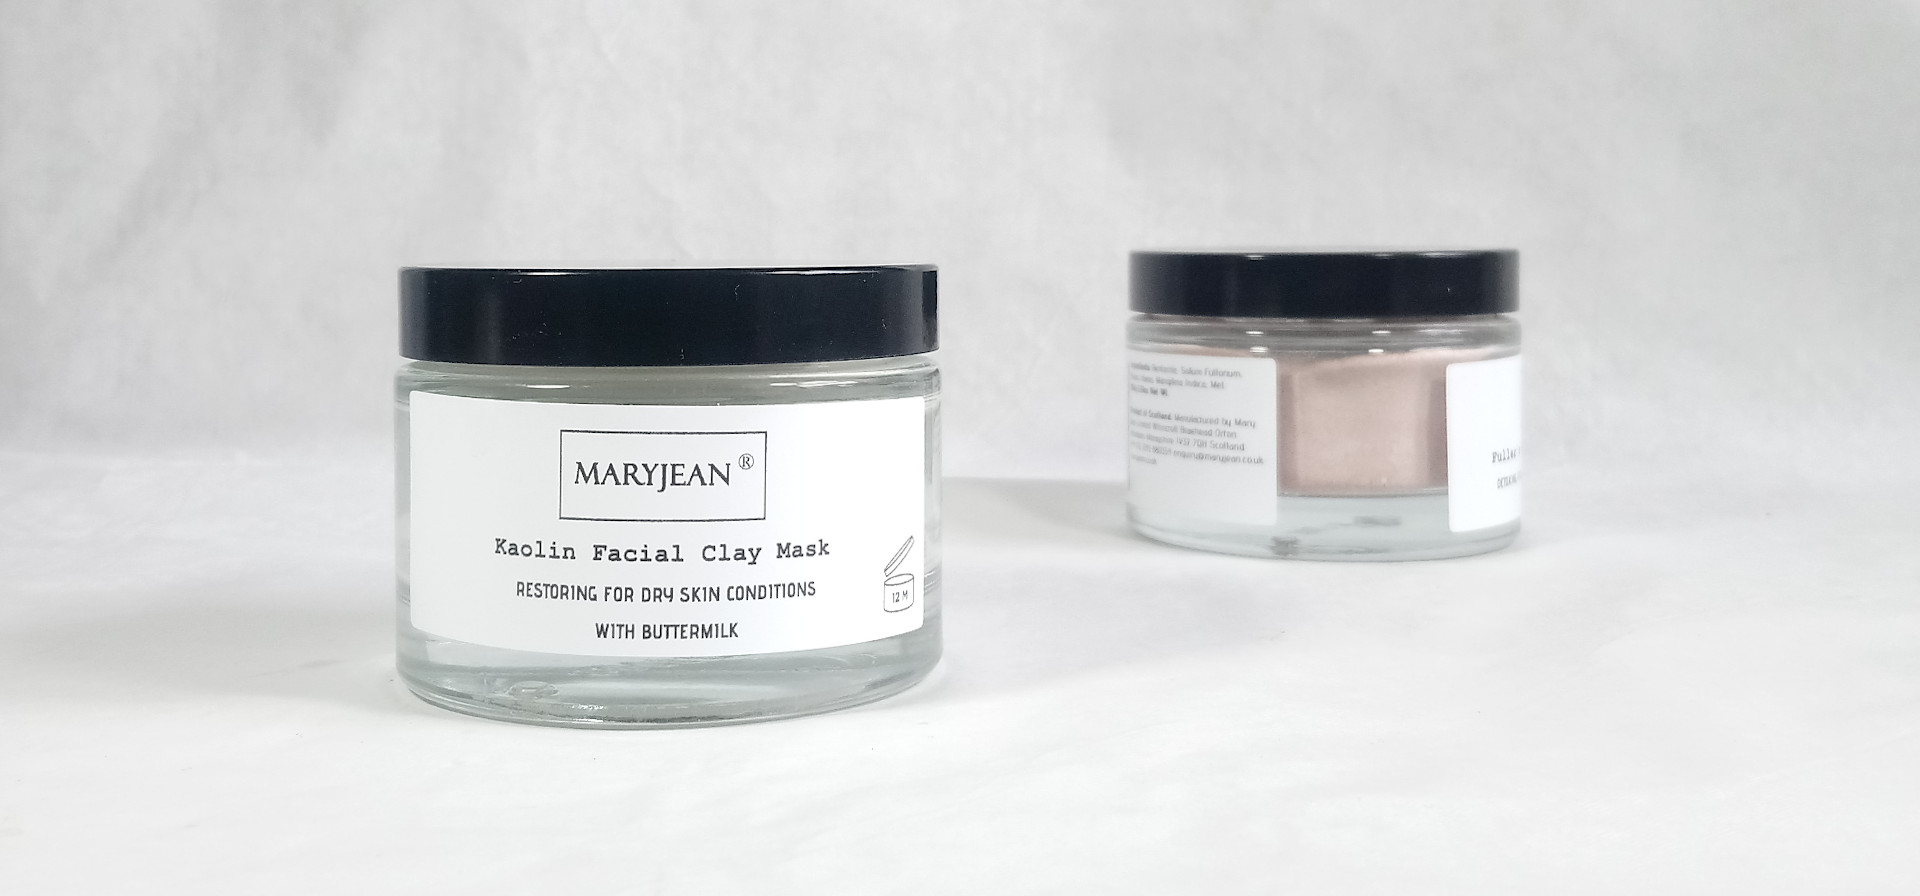 Restoring Kaolin Clay Facial Mask For Dry Skin Conditions With Buttermilk en_GB